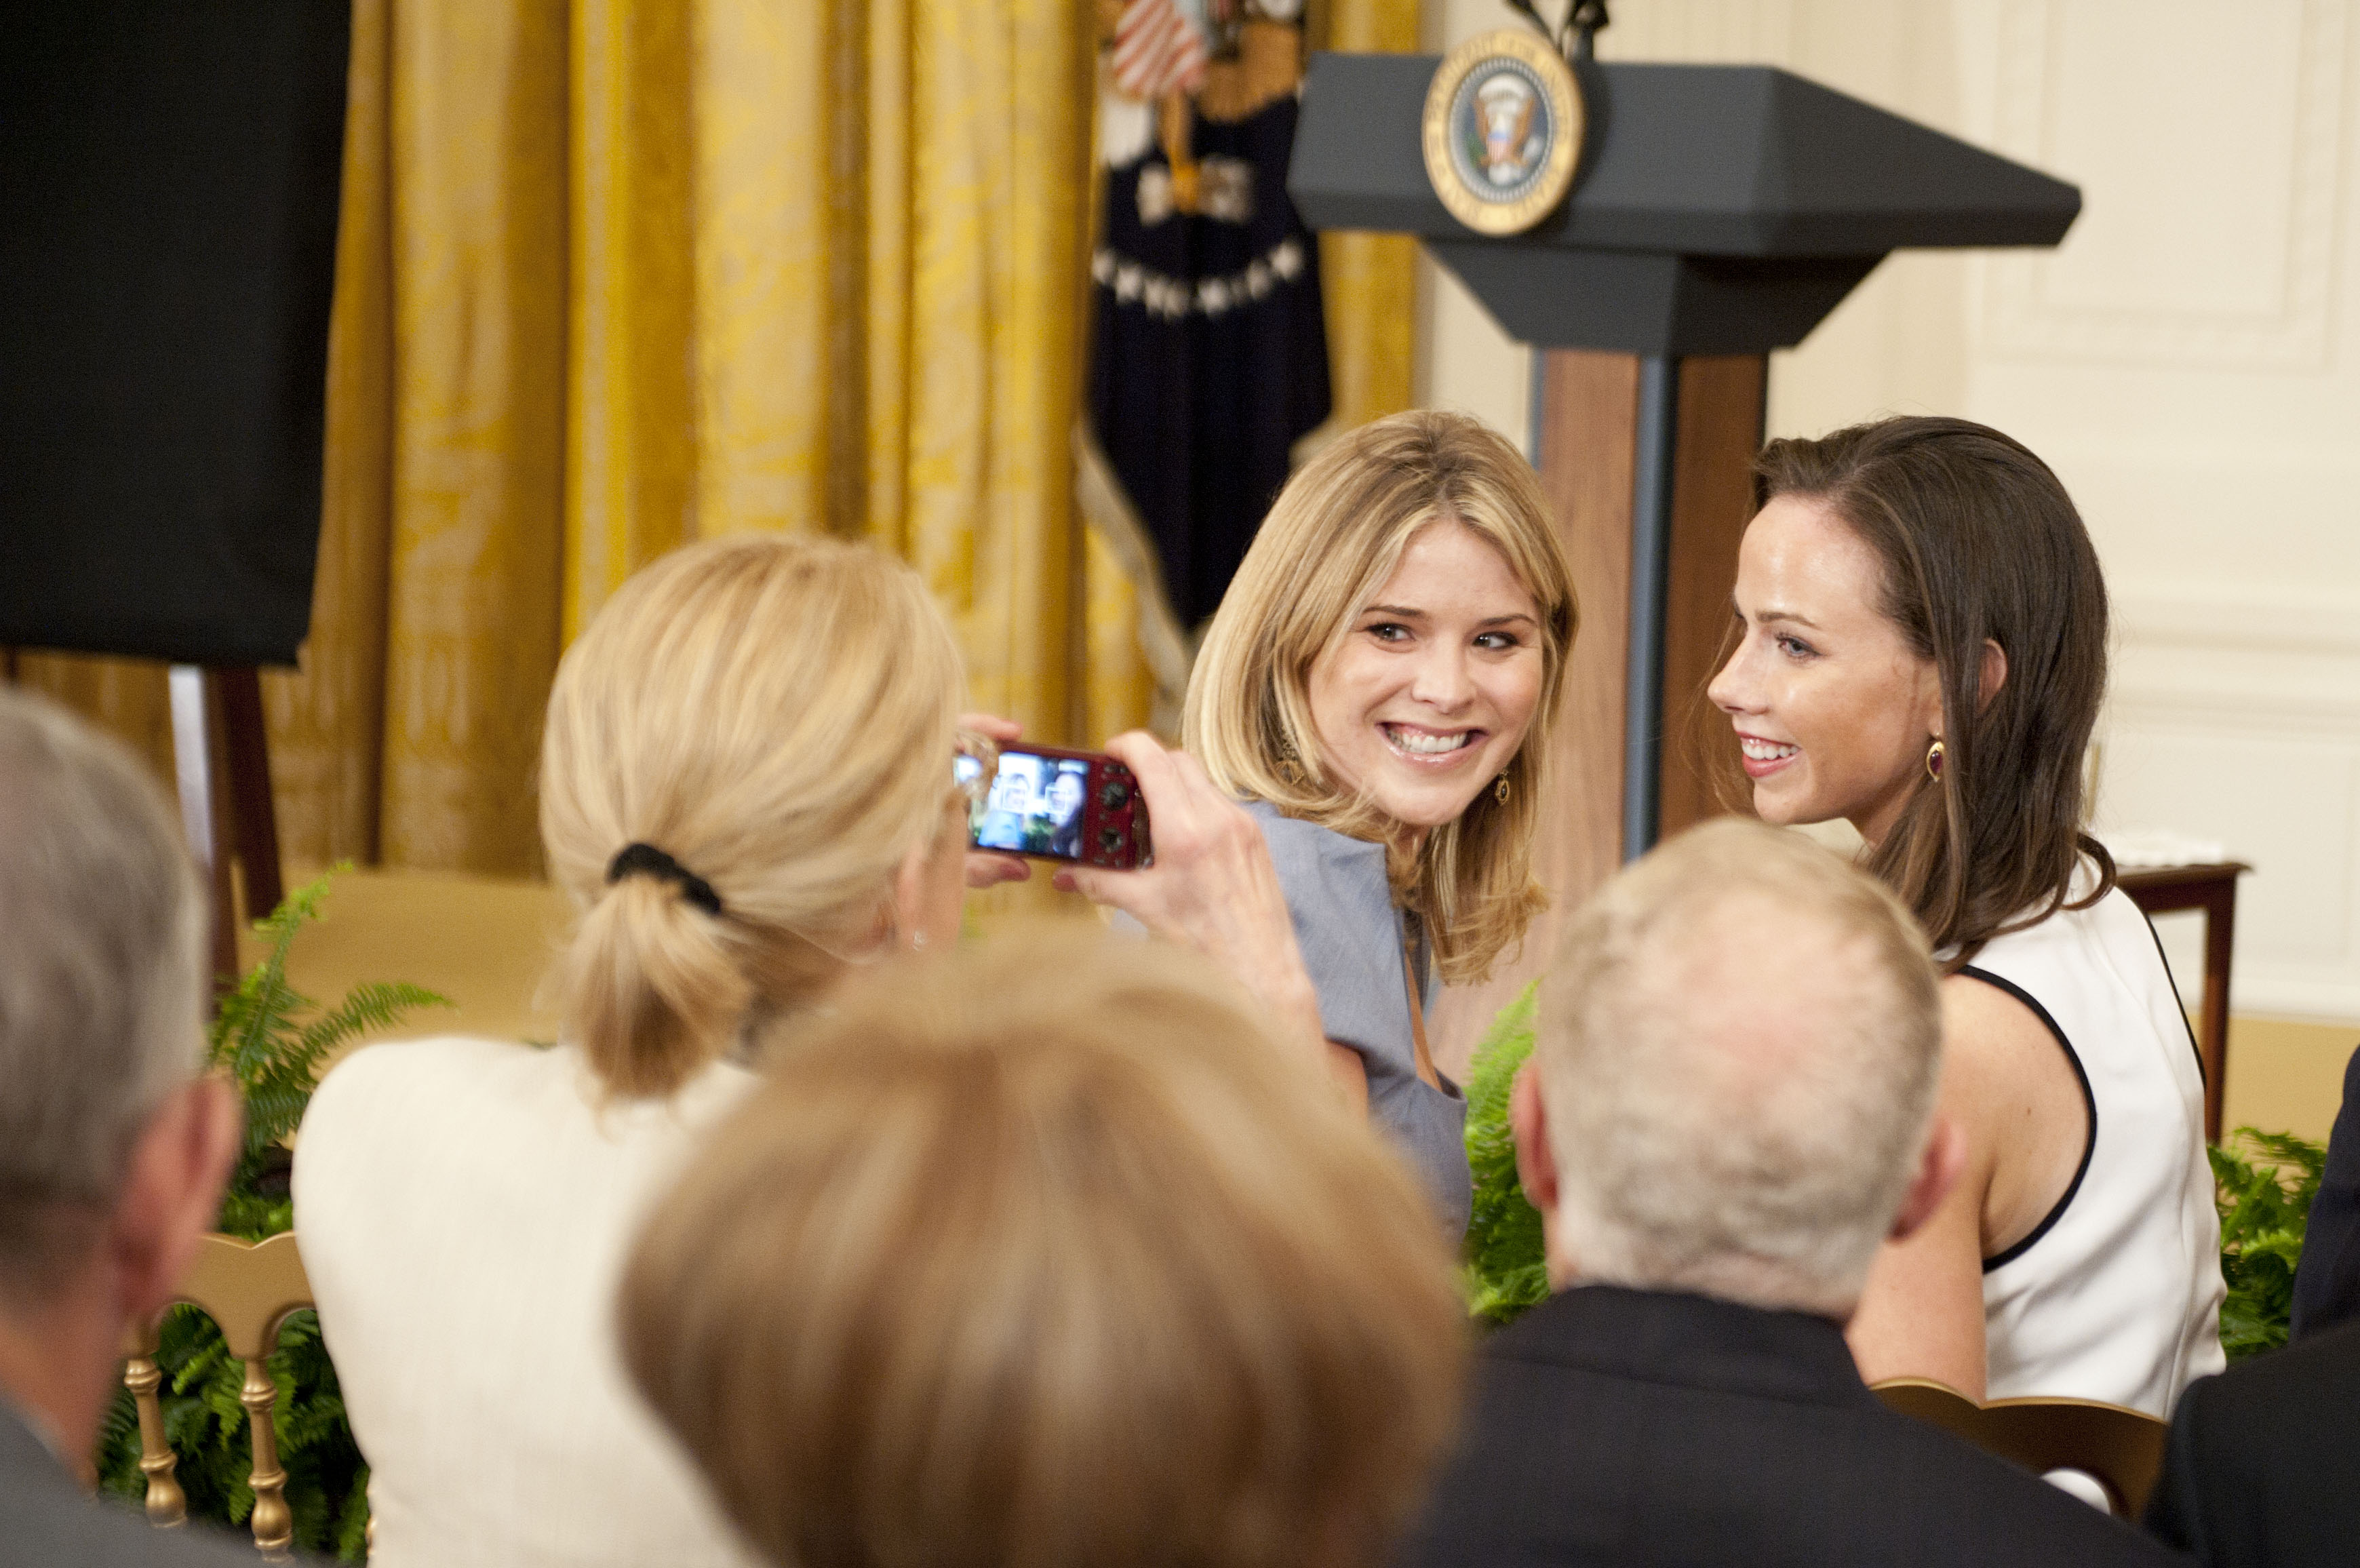 Jenna Bush-Hager and Barbara Bush attend the George W. Bush and Laura Bush Portrait unveiling at the White House on May 31, 2012 in Washington, DC.